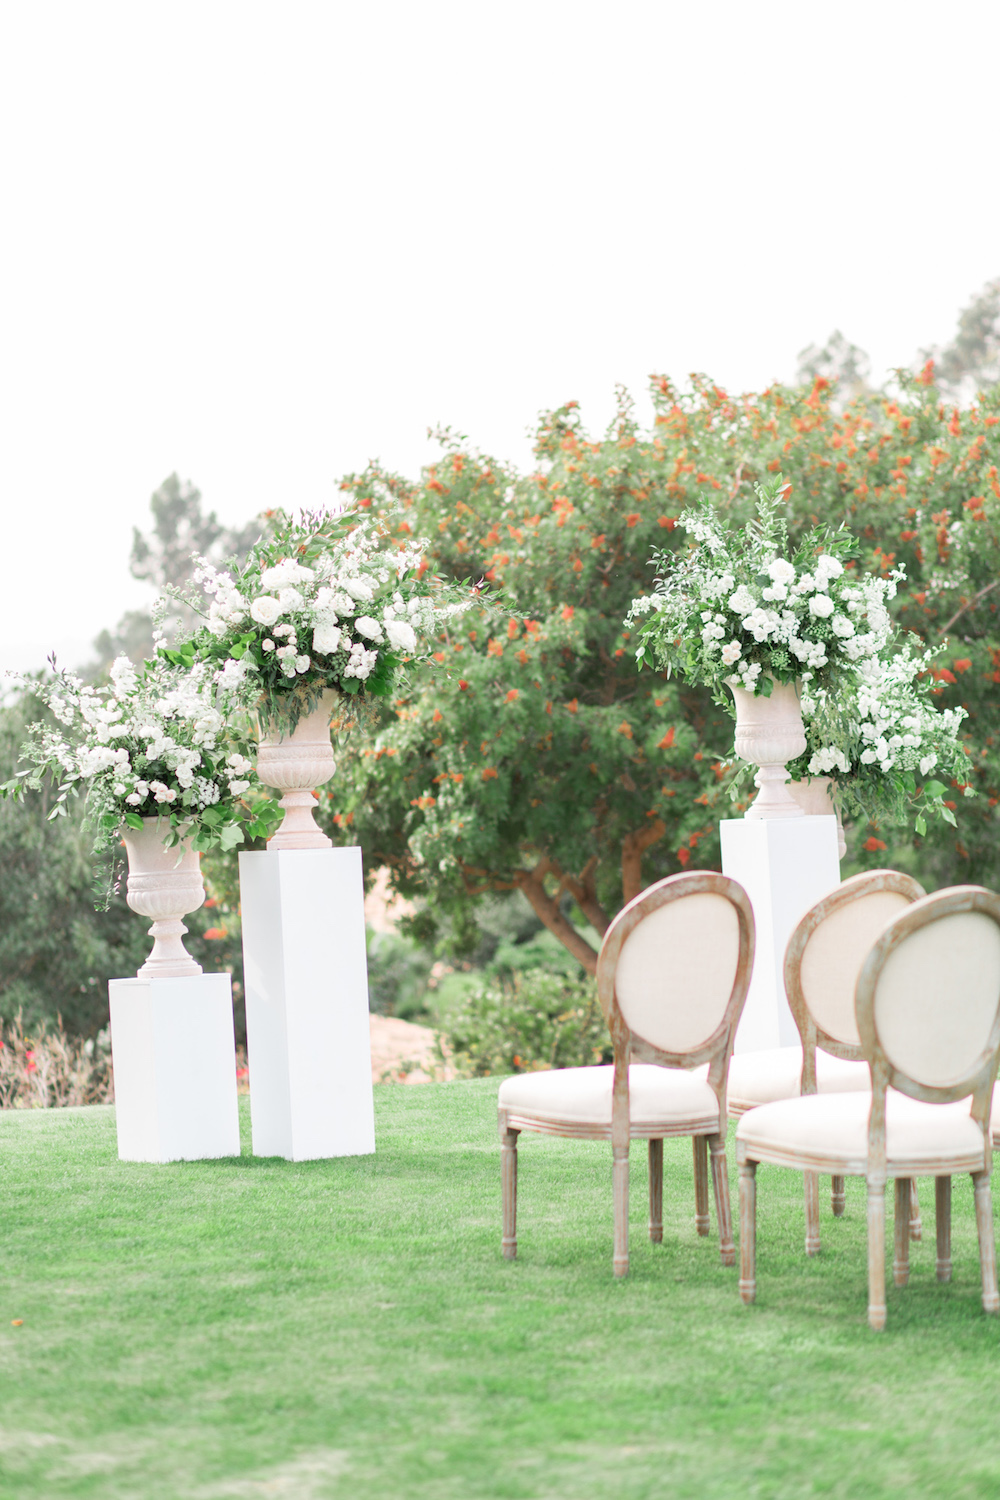 Garden romantic white ceremony pedestal florals| Rancho Valencia Weddings | Rancho Santa Fe | Compass Floral | Wedding Florist in San Diego and Southern California | Cavin Elizabeth Photography